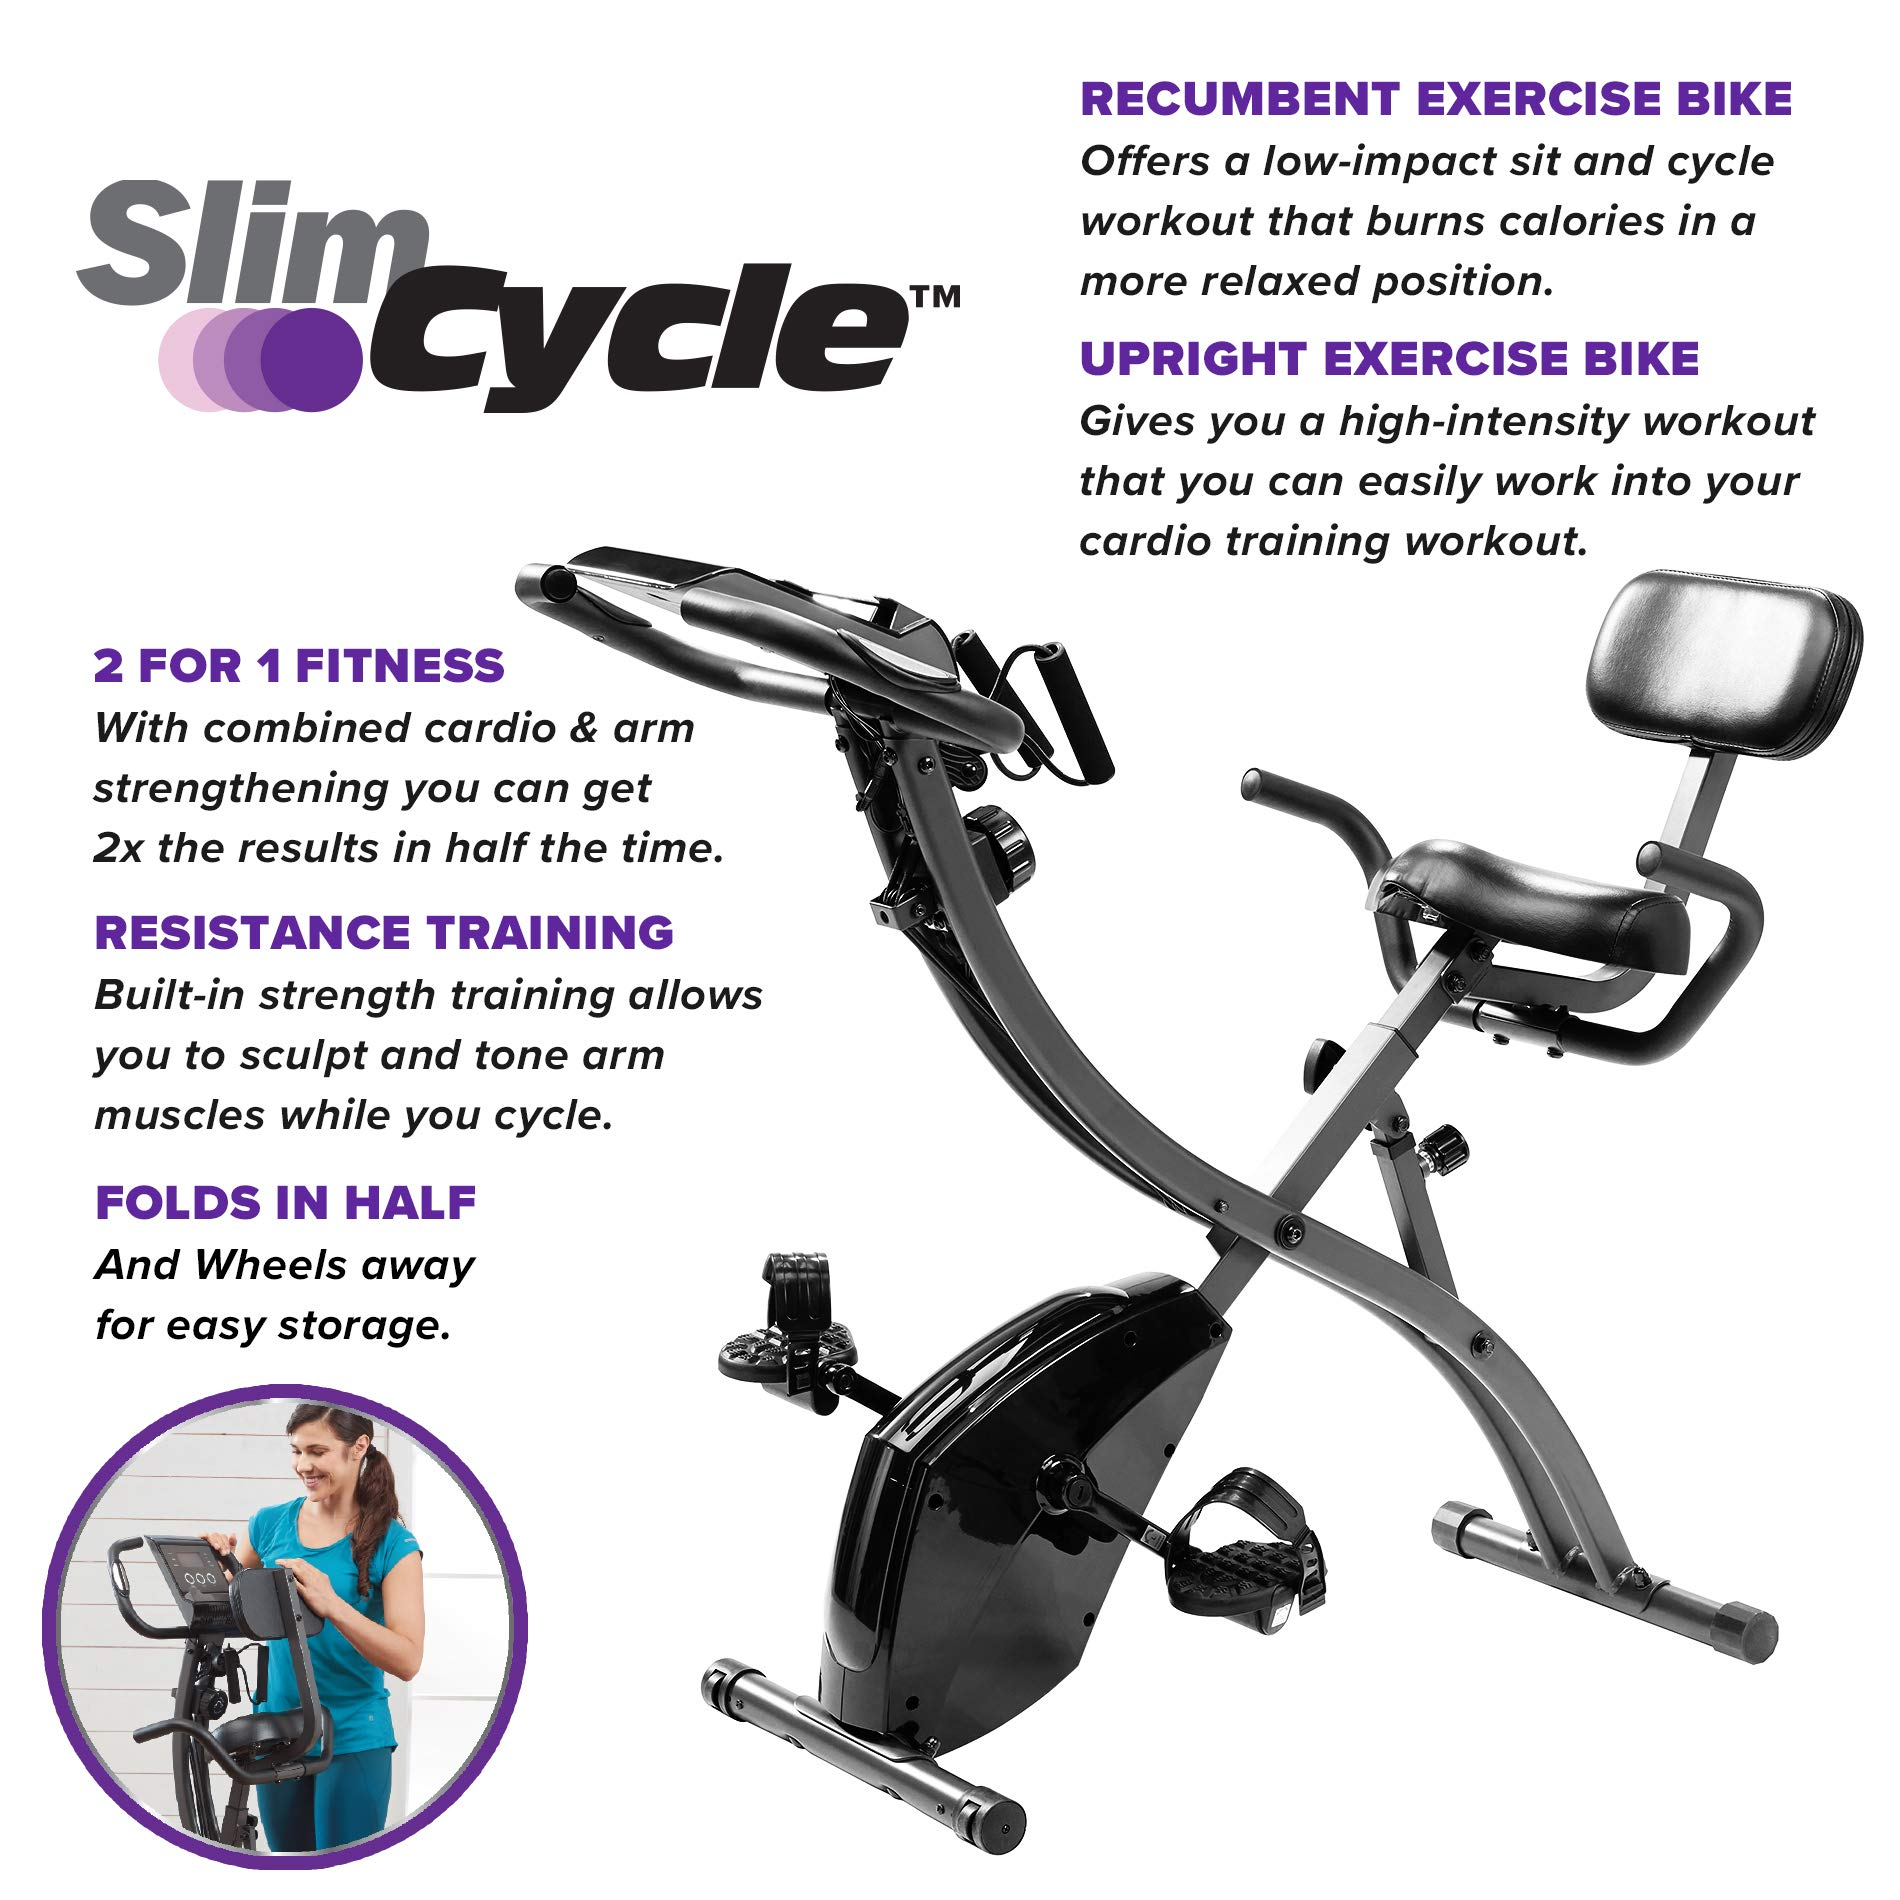 Slim Cycle 2-in-1 Stationary Bike - Folding Indoor Exercise Bike with Arm Resistance Bands and Heart Monitor - Perfect Home Exercise Machine for Cardio by BulbHead (Image #2)